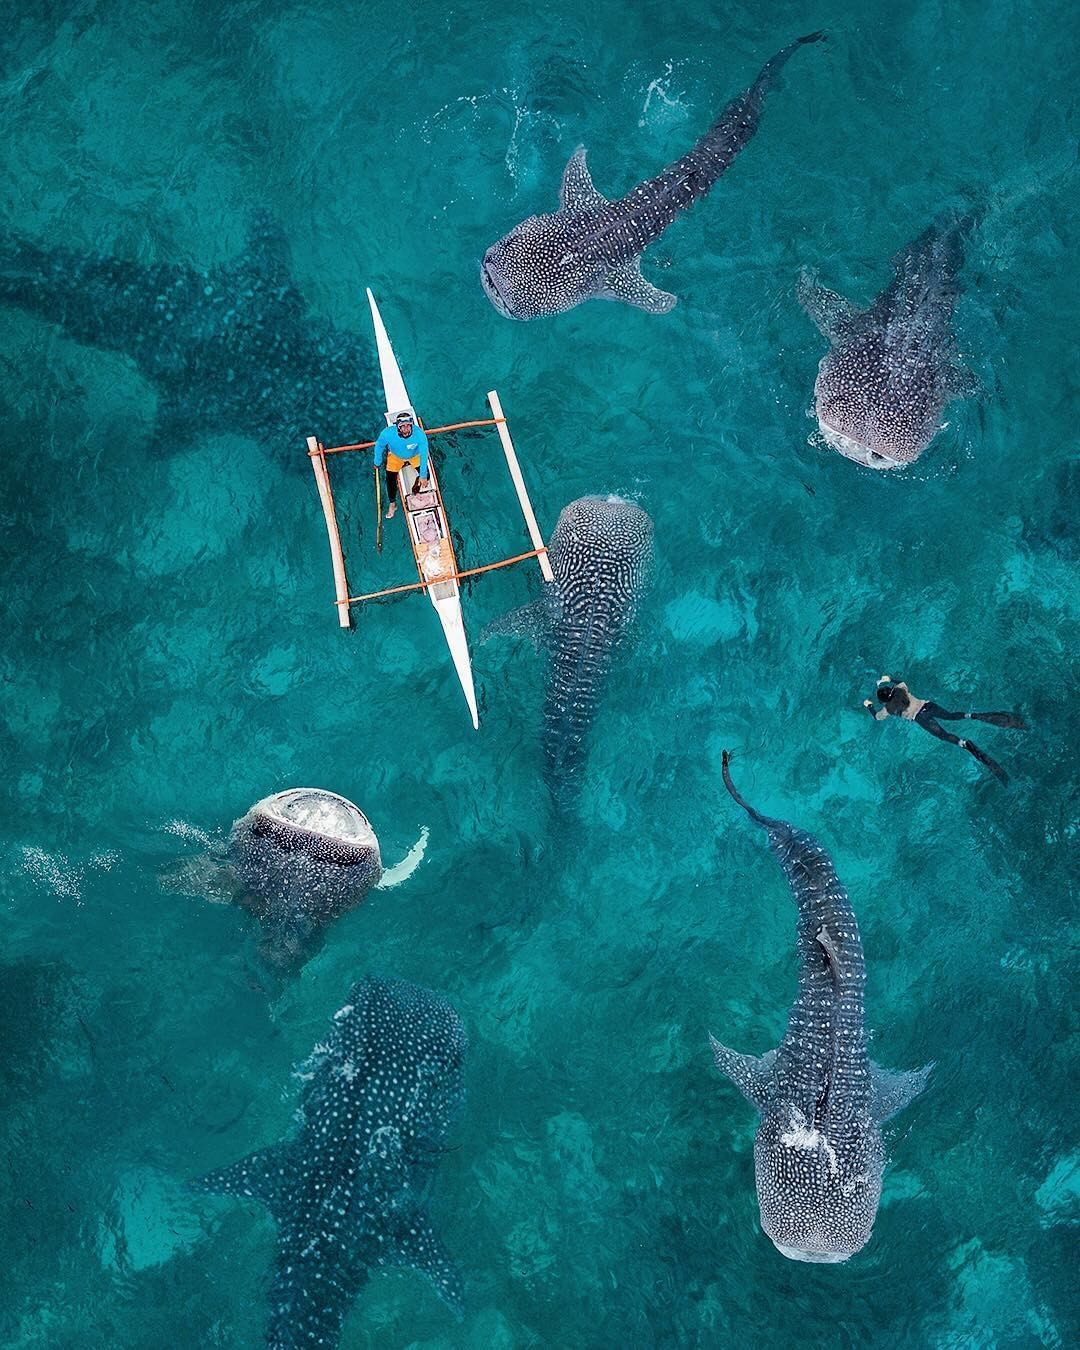 Manila Flights On Instagram Who Wants To Swim With The Butandings Of Oslob Tag Your Partner Swimming With Whale Sharks Whale Shark Ocean Creatures